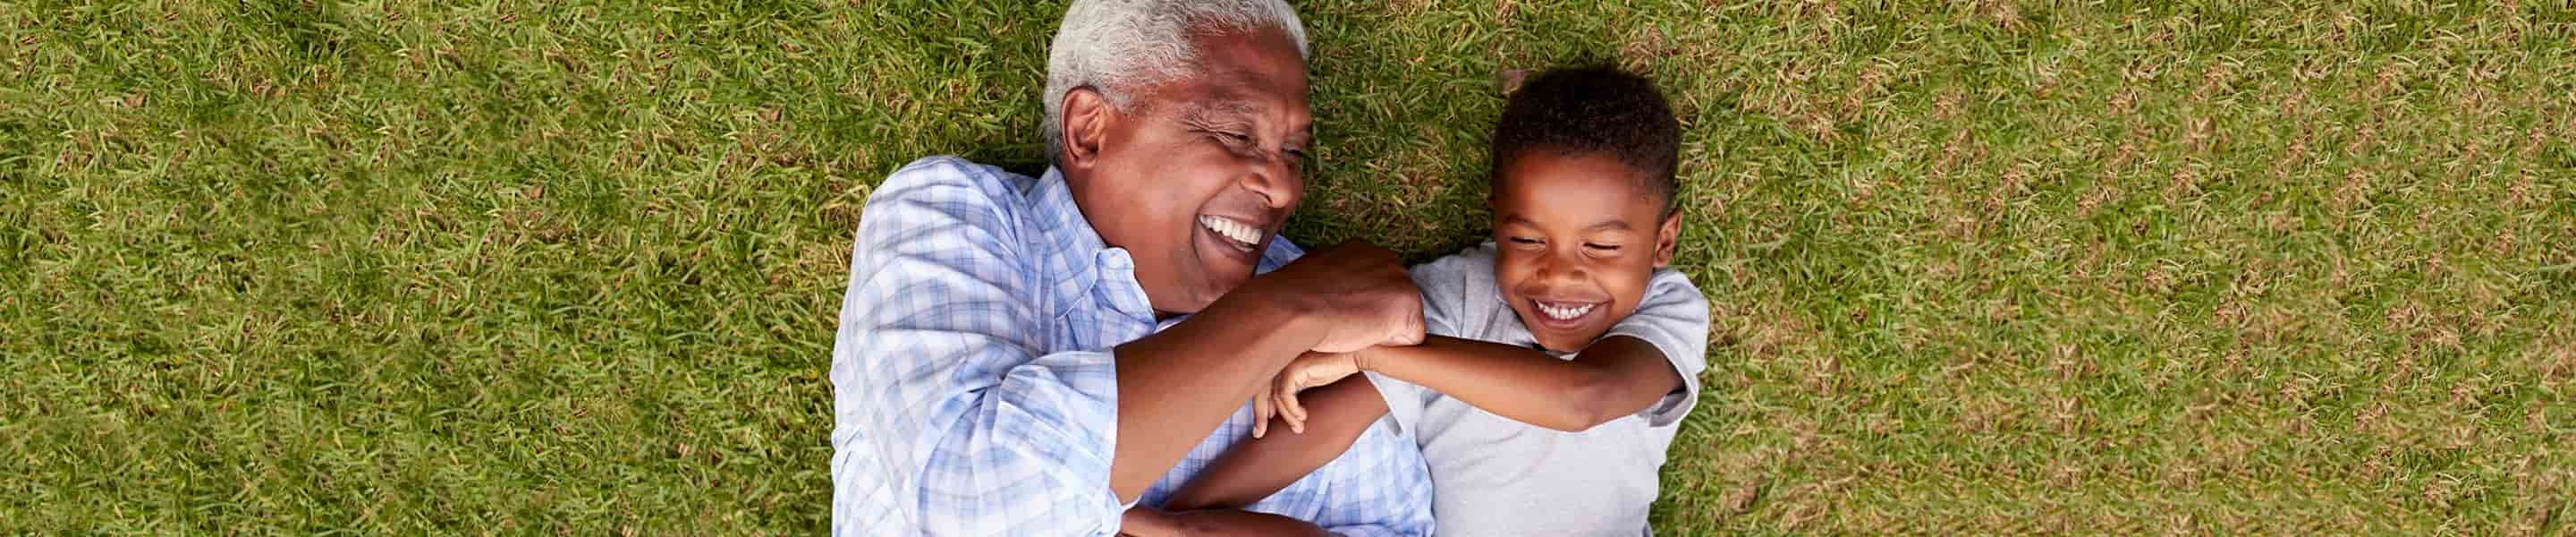 Grandfather and grandson laughing while laying on the grass.